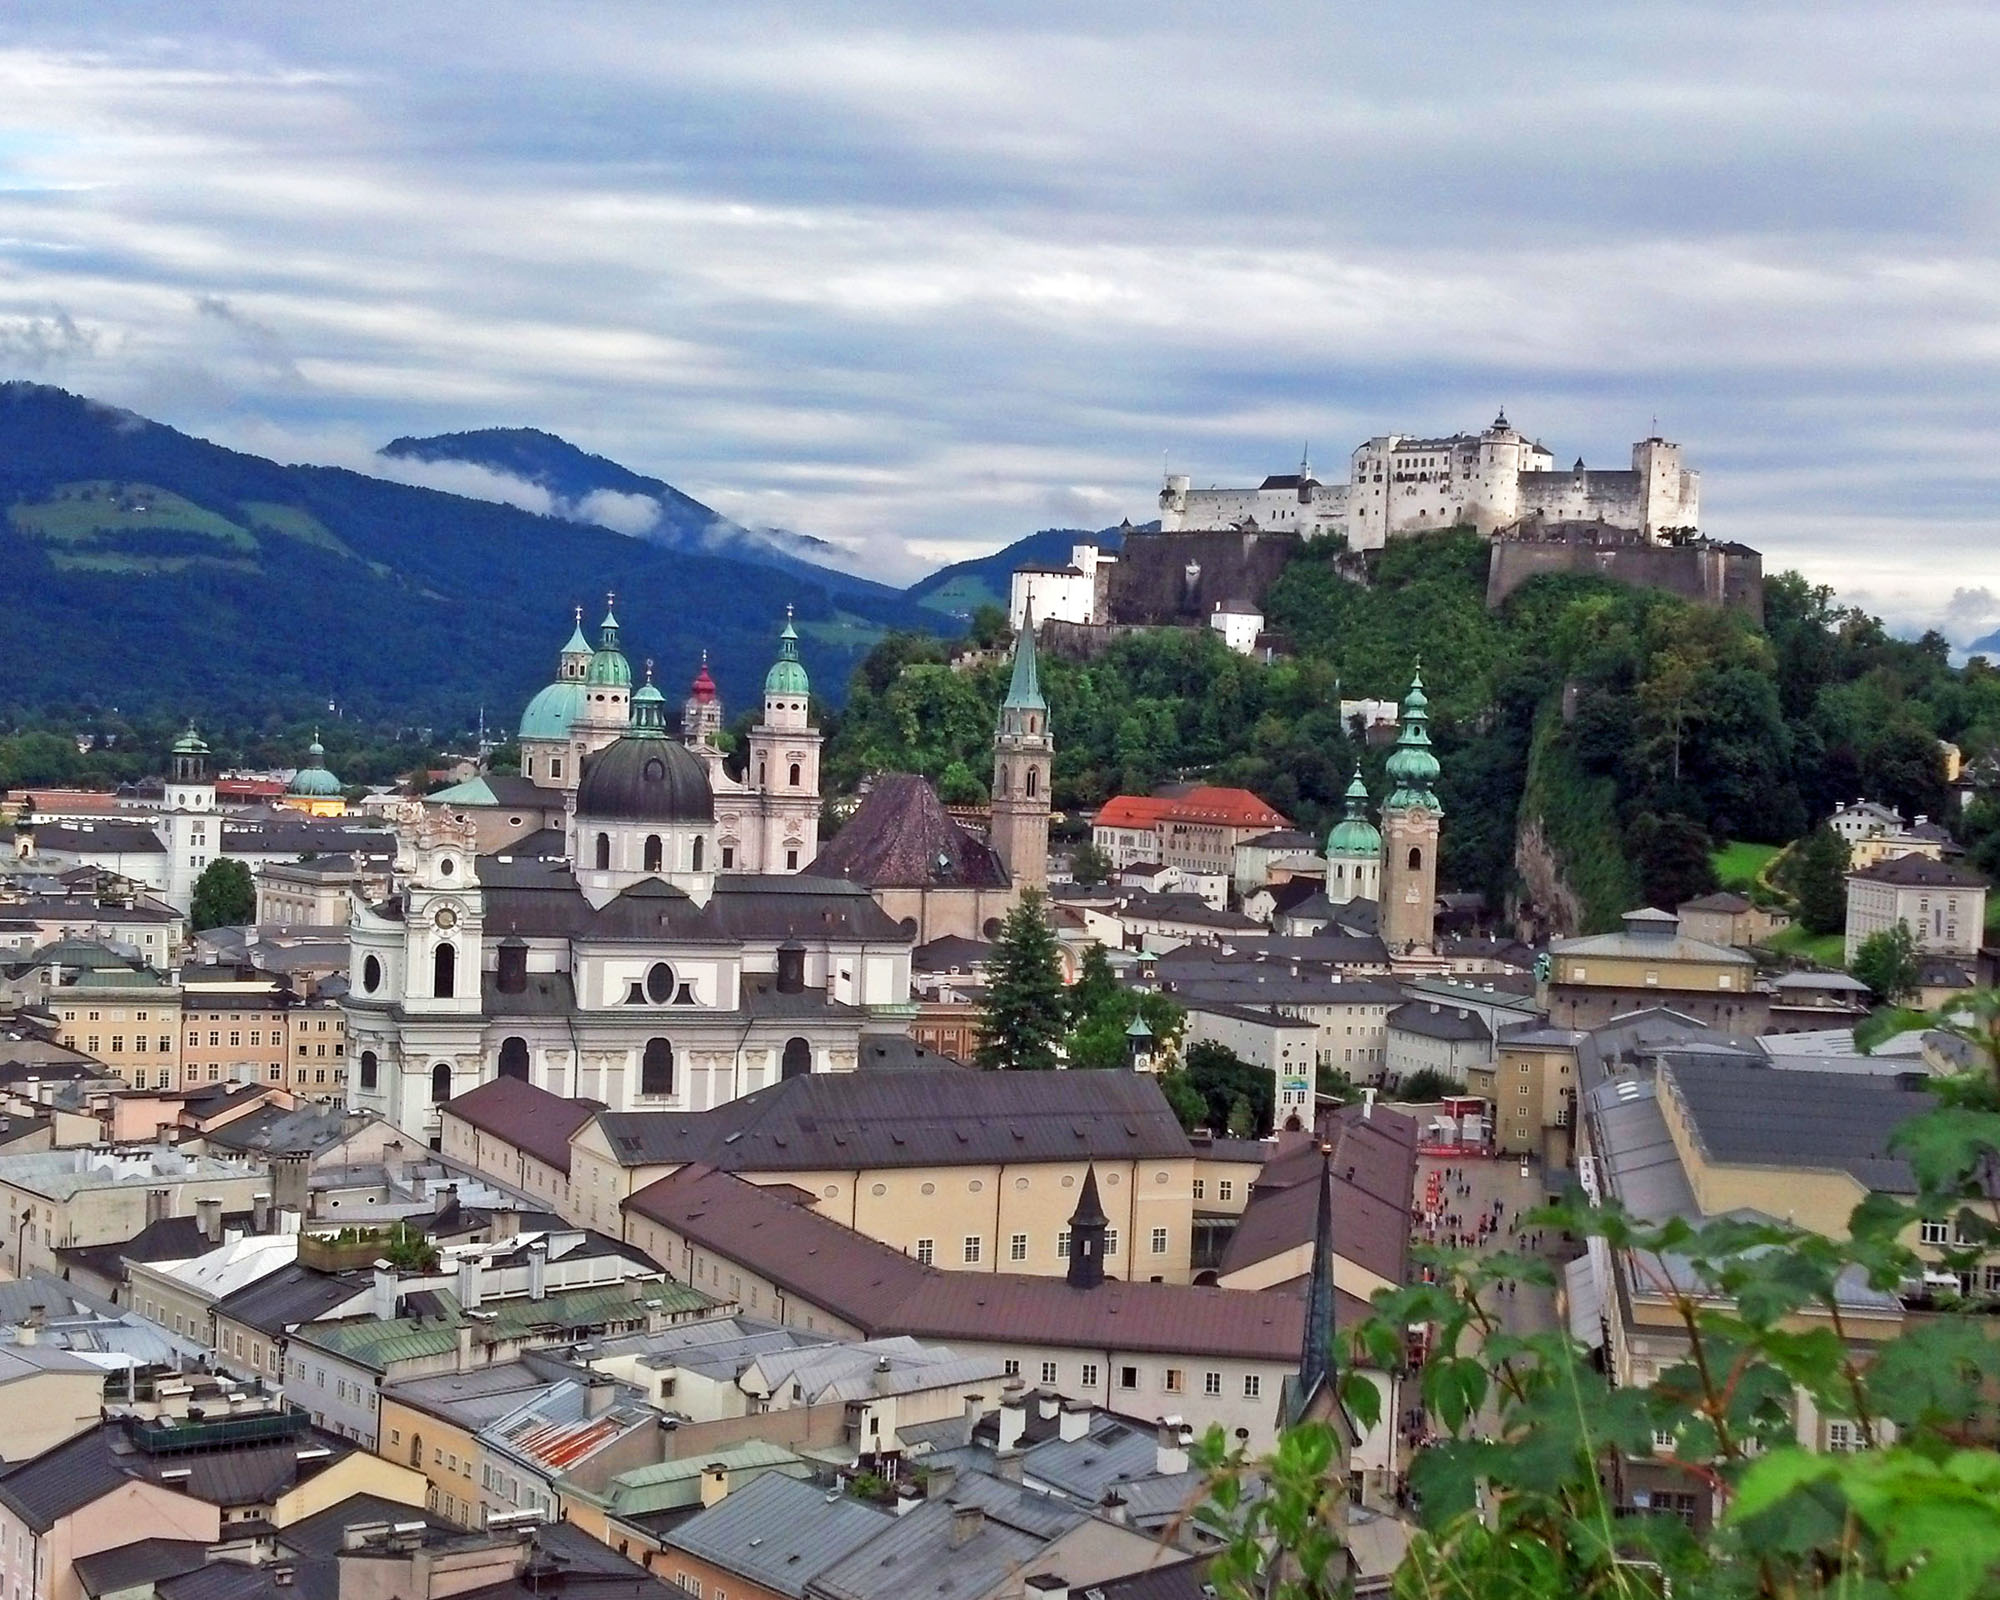 A view of Salzburg from Monchsberg Mountain.